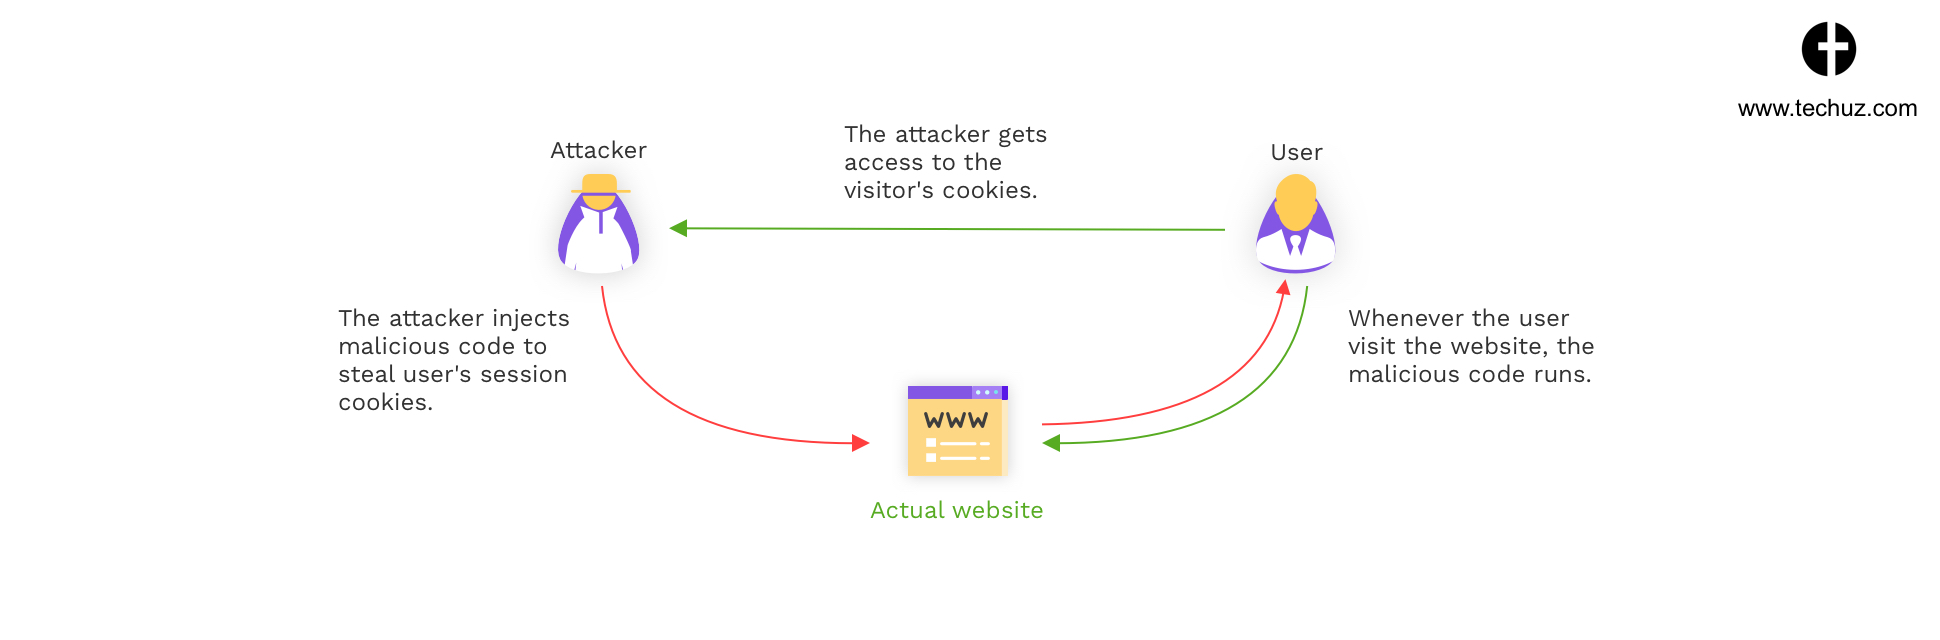 Cross Site Scripting (XSS) Attacks - Web Security Check - 5 Website Security Breaches and Tips to Prevent from Hackers